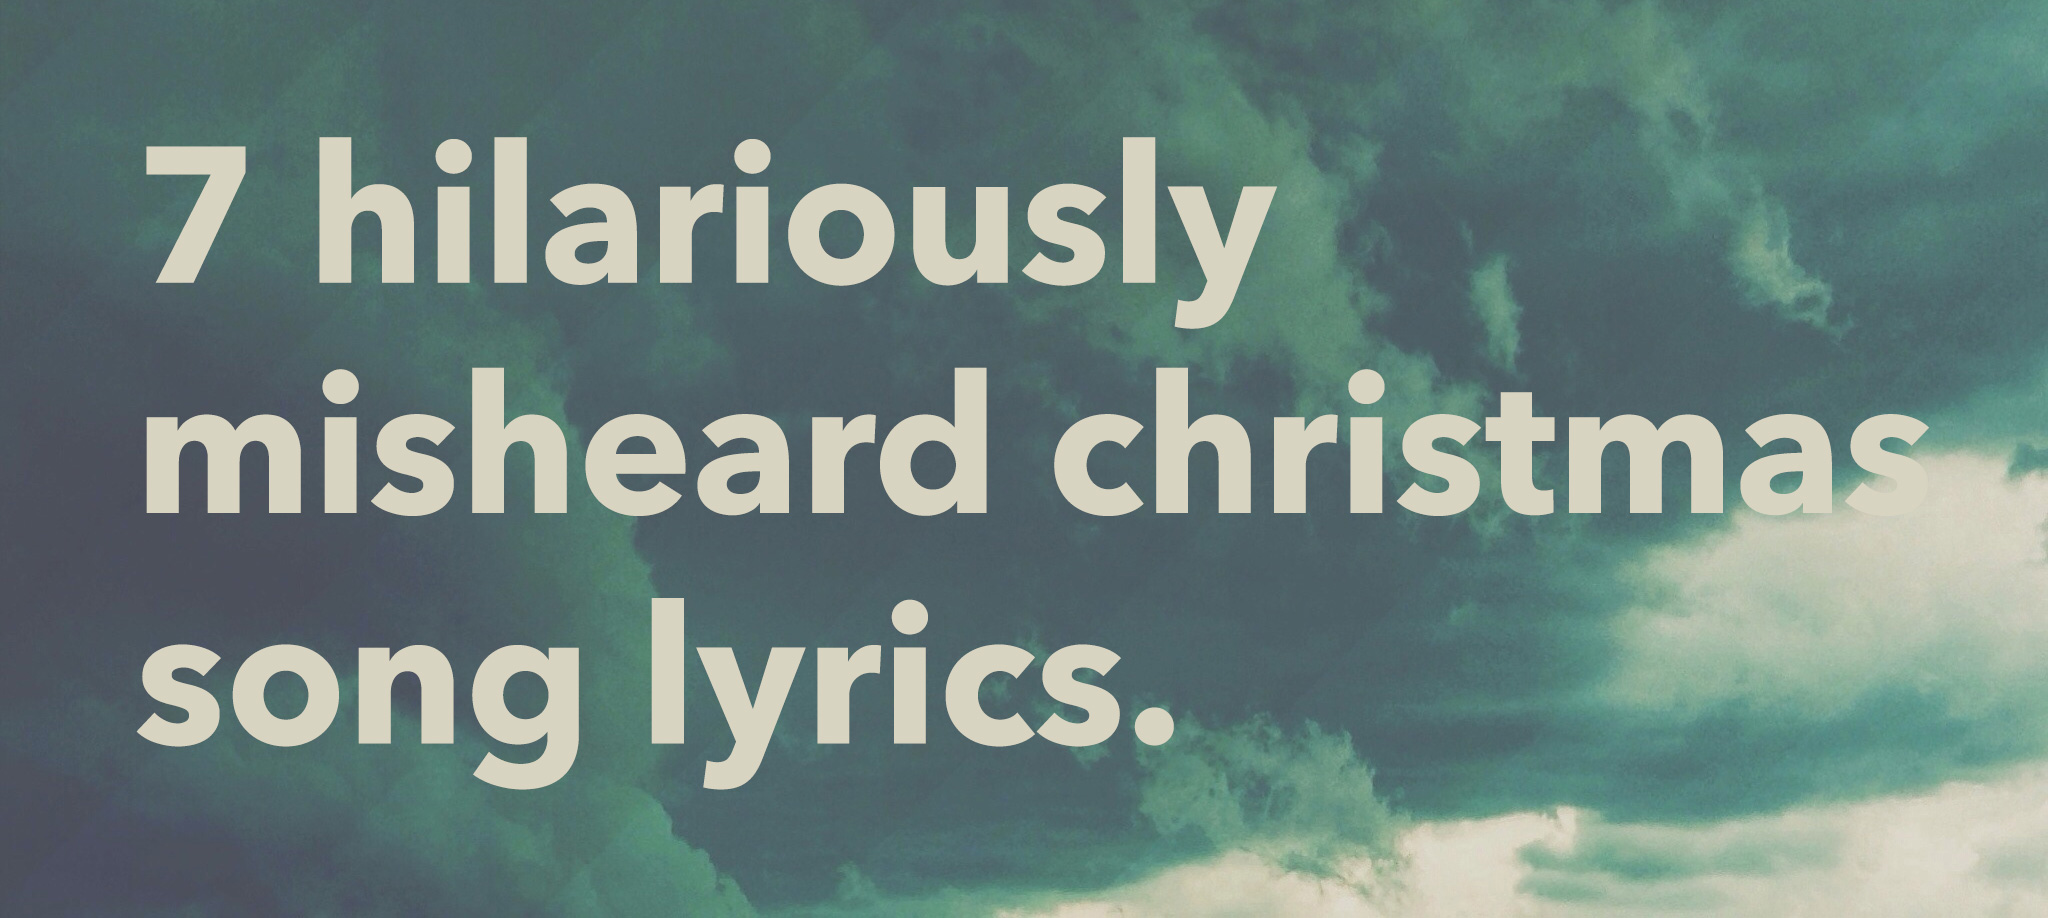 7 hilariously misheard christmas song lyrics